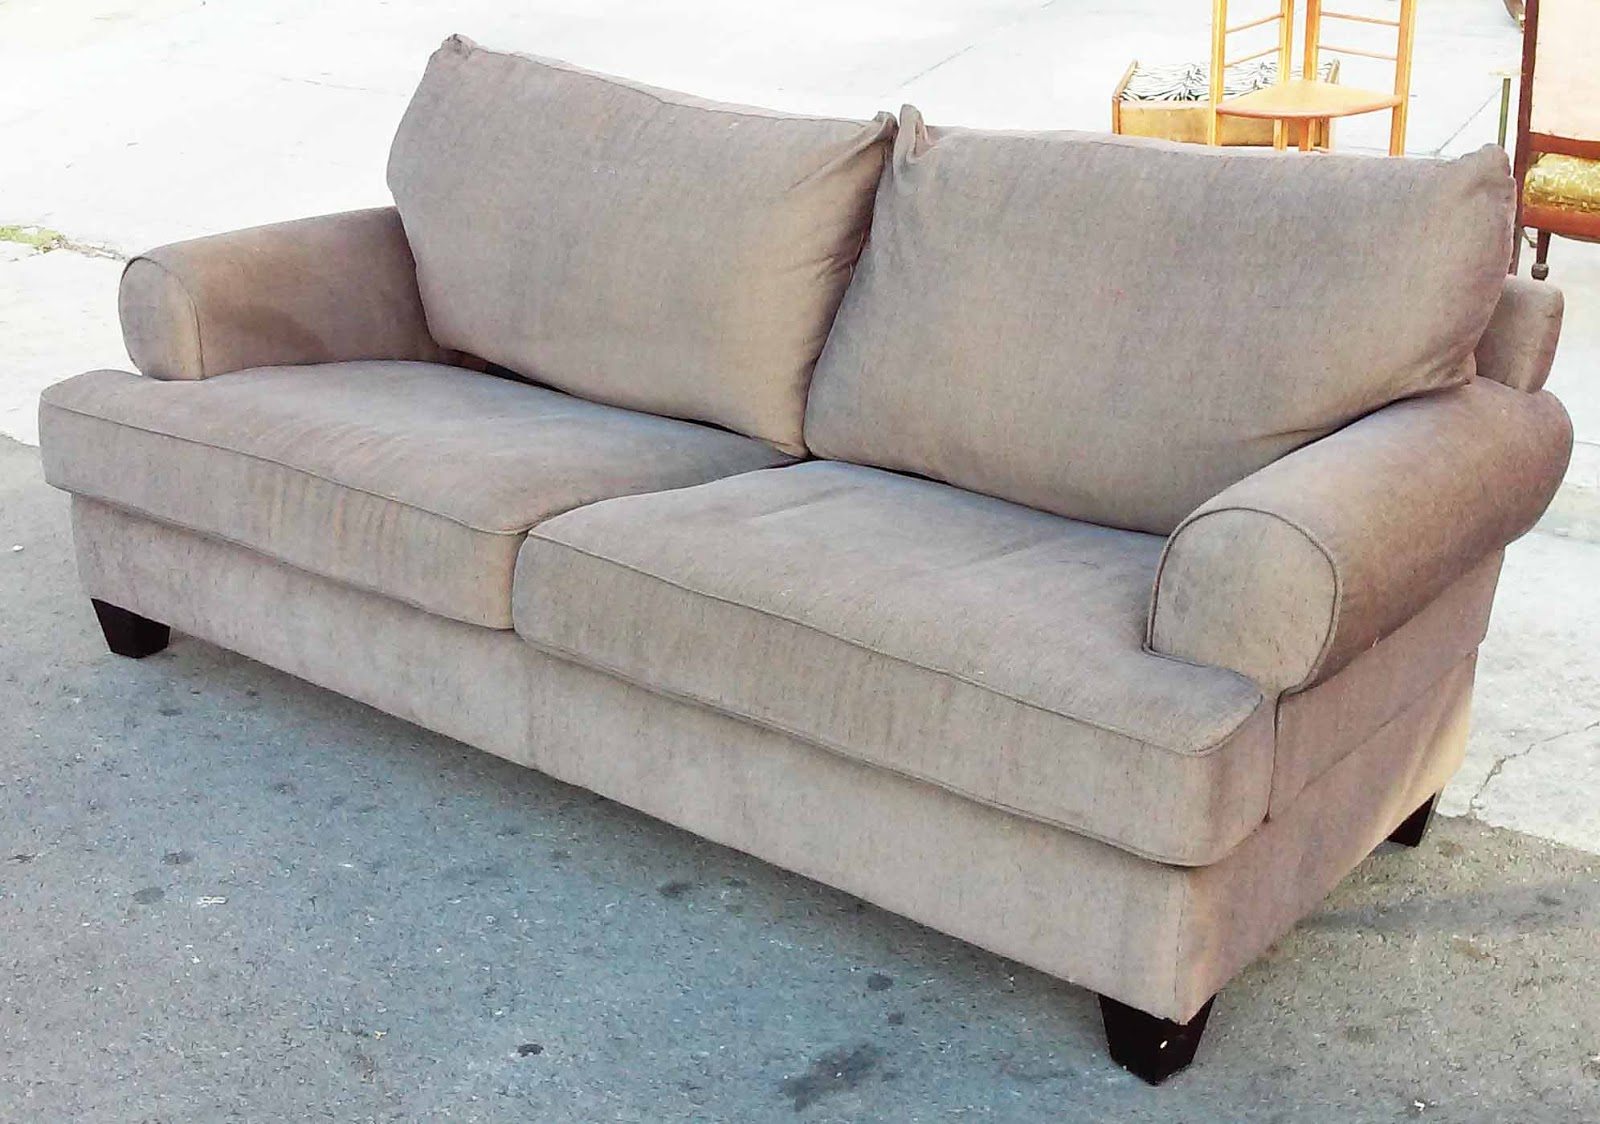 Sofa Bed With Innerspring Mattress Fabric Chesterfield Argos Uhuru Furniture And Collectibles Sold Queen Chocolate